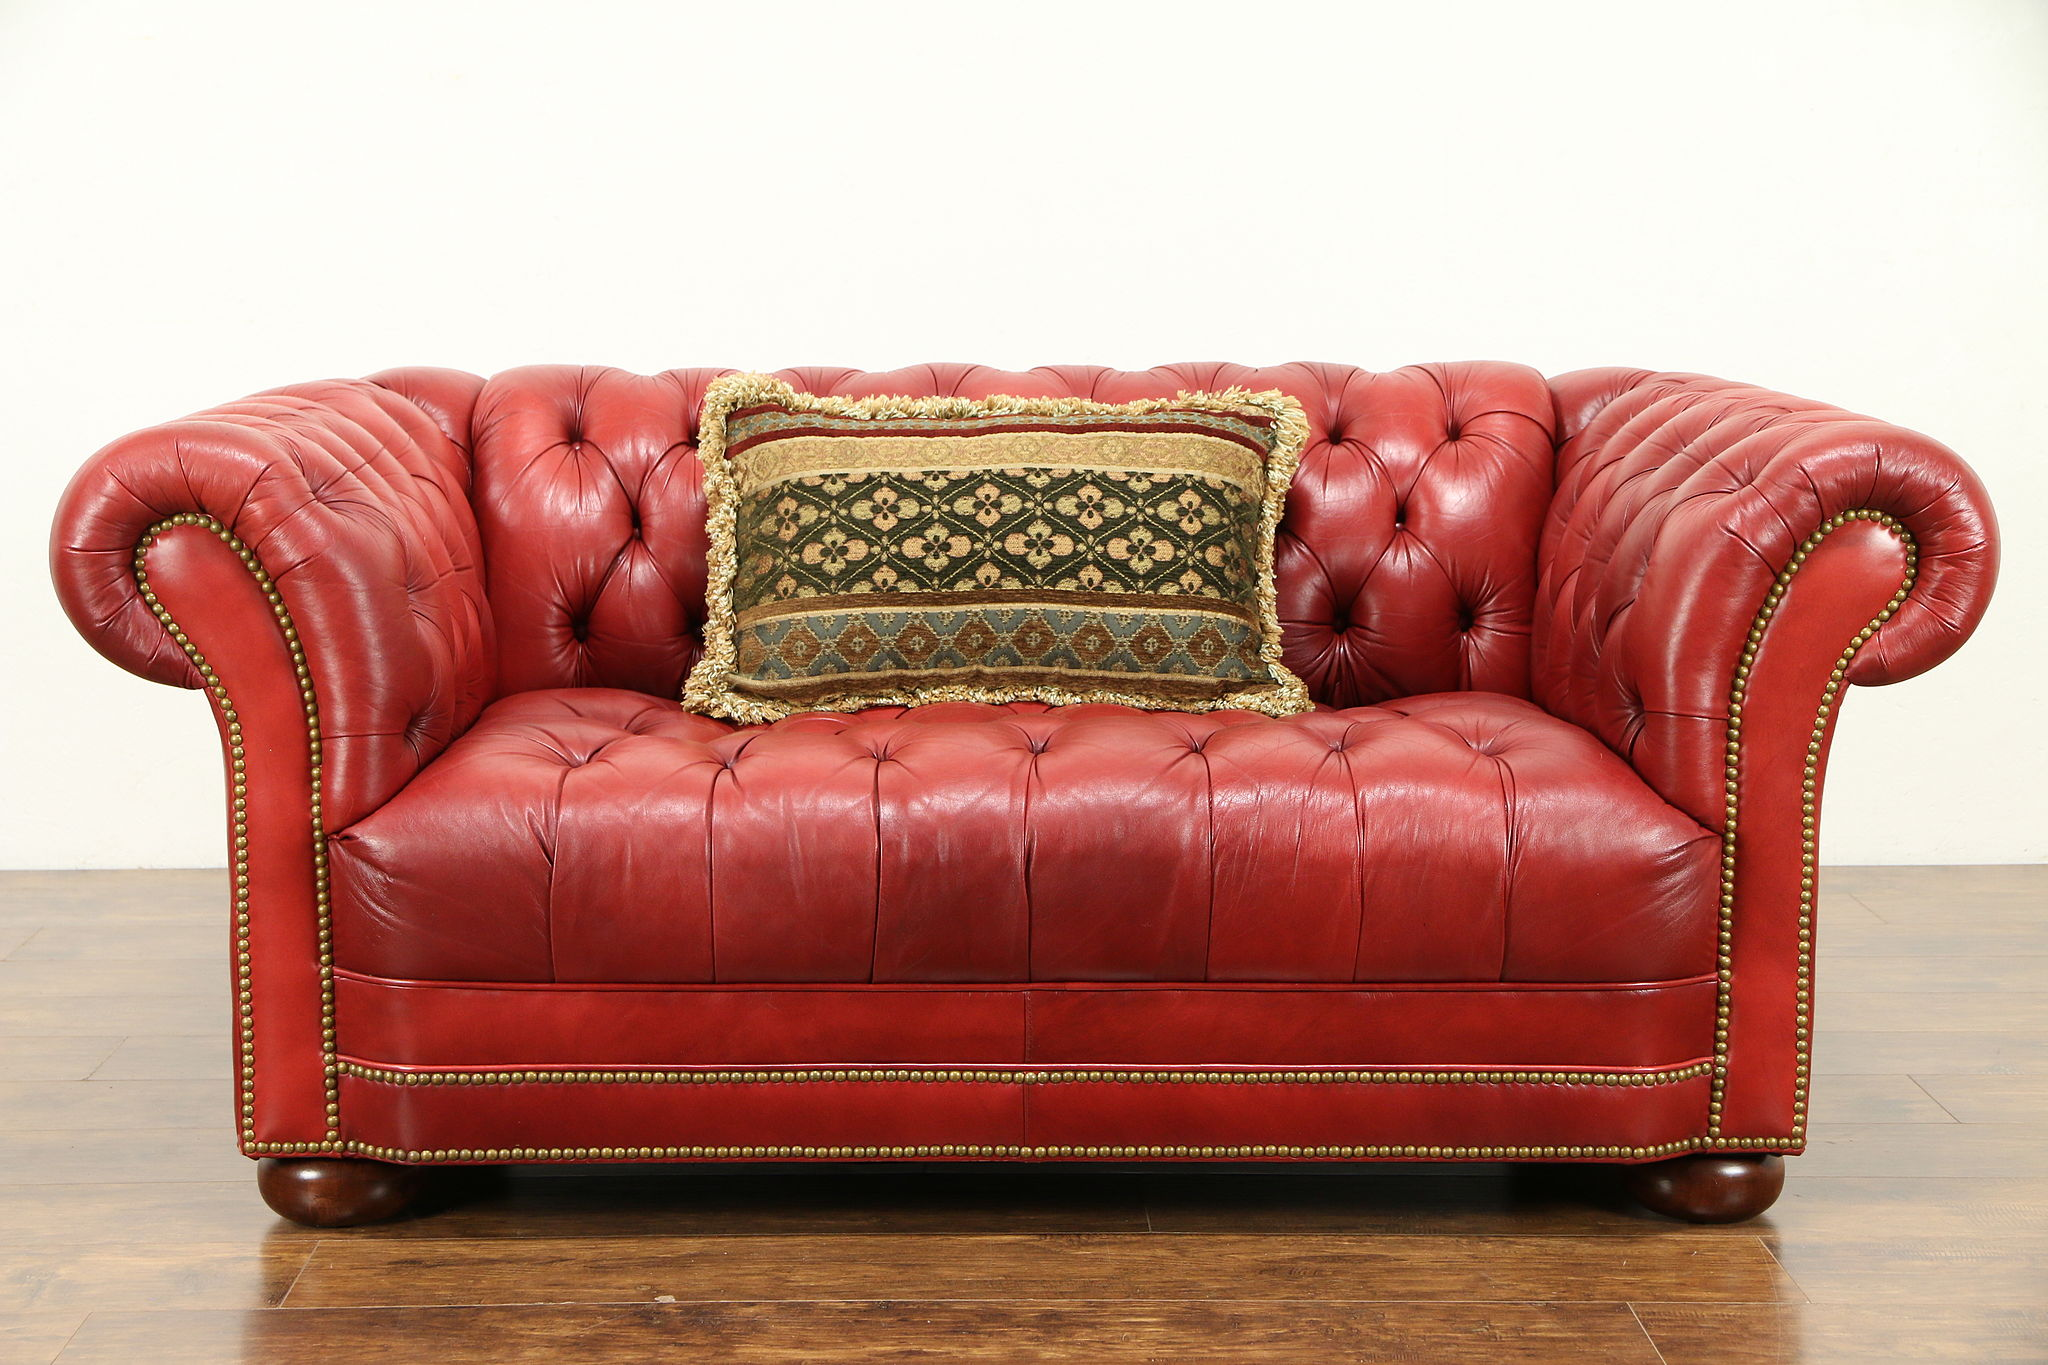 Sold Leather Tufted Vintage Chesterfield Sofa Brass Nailhead Trim